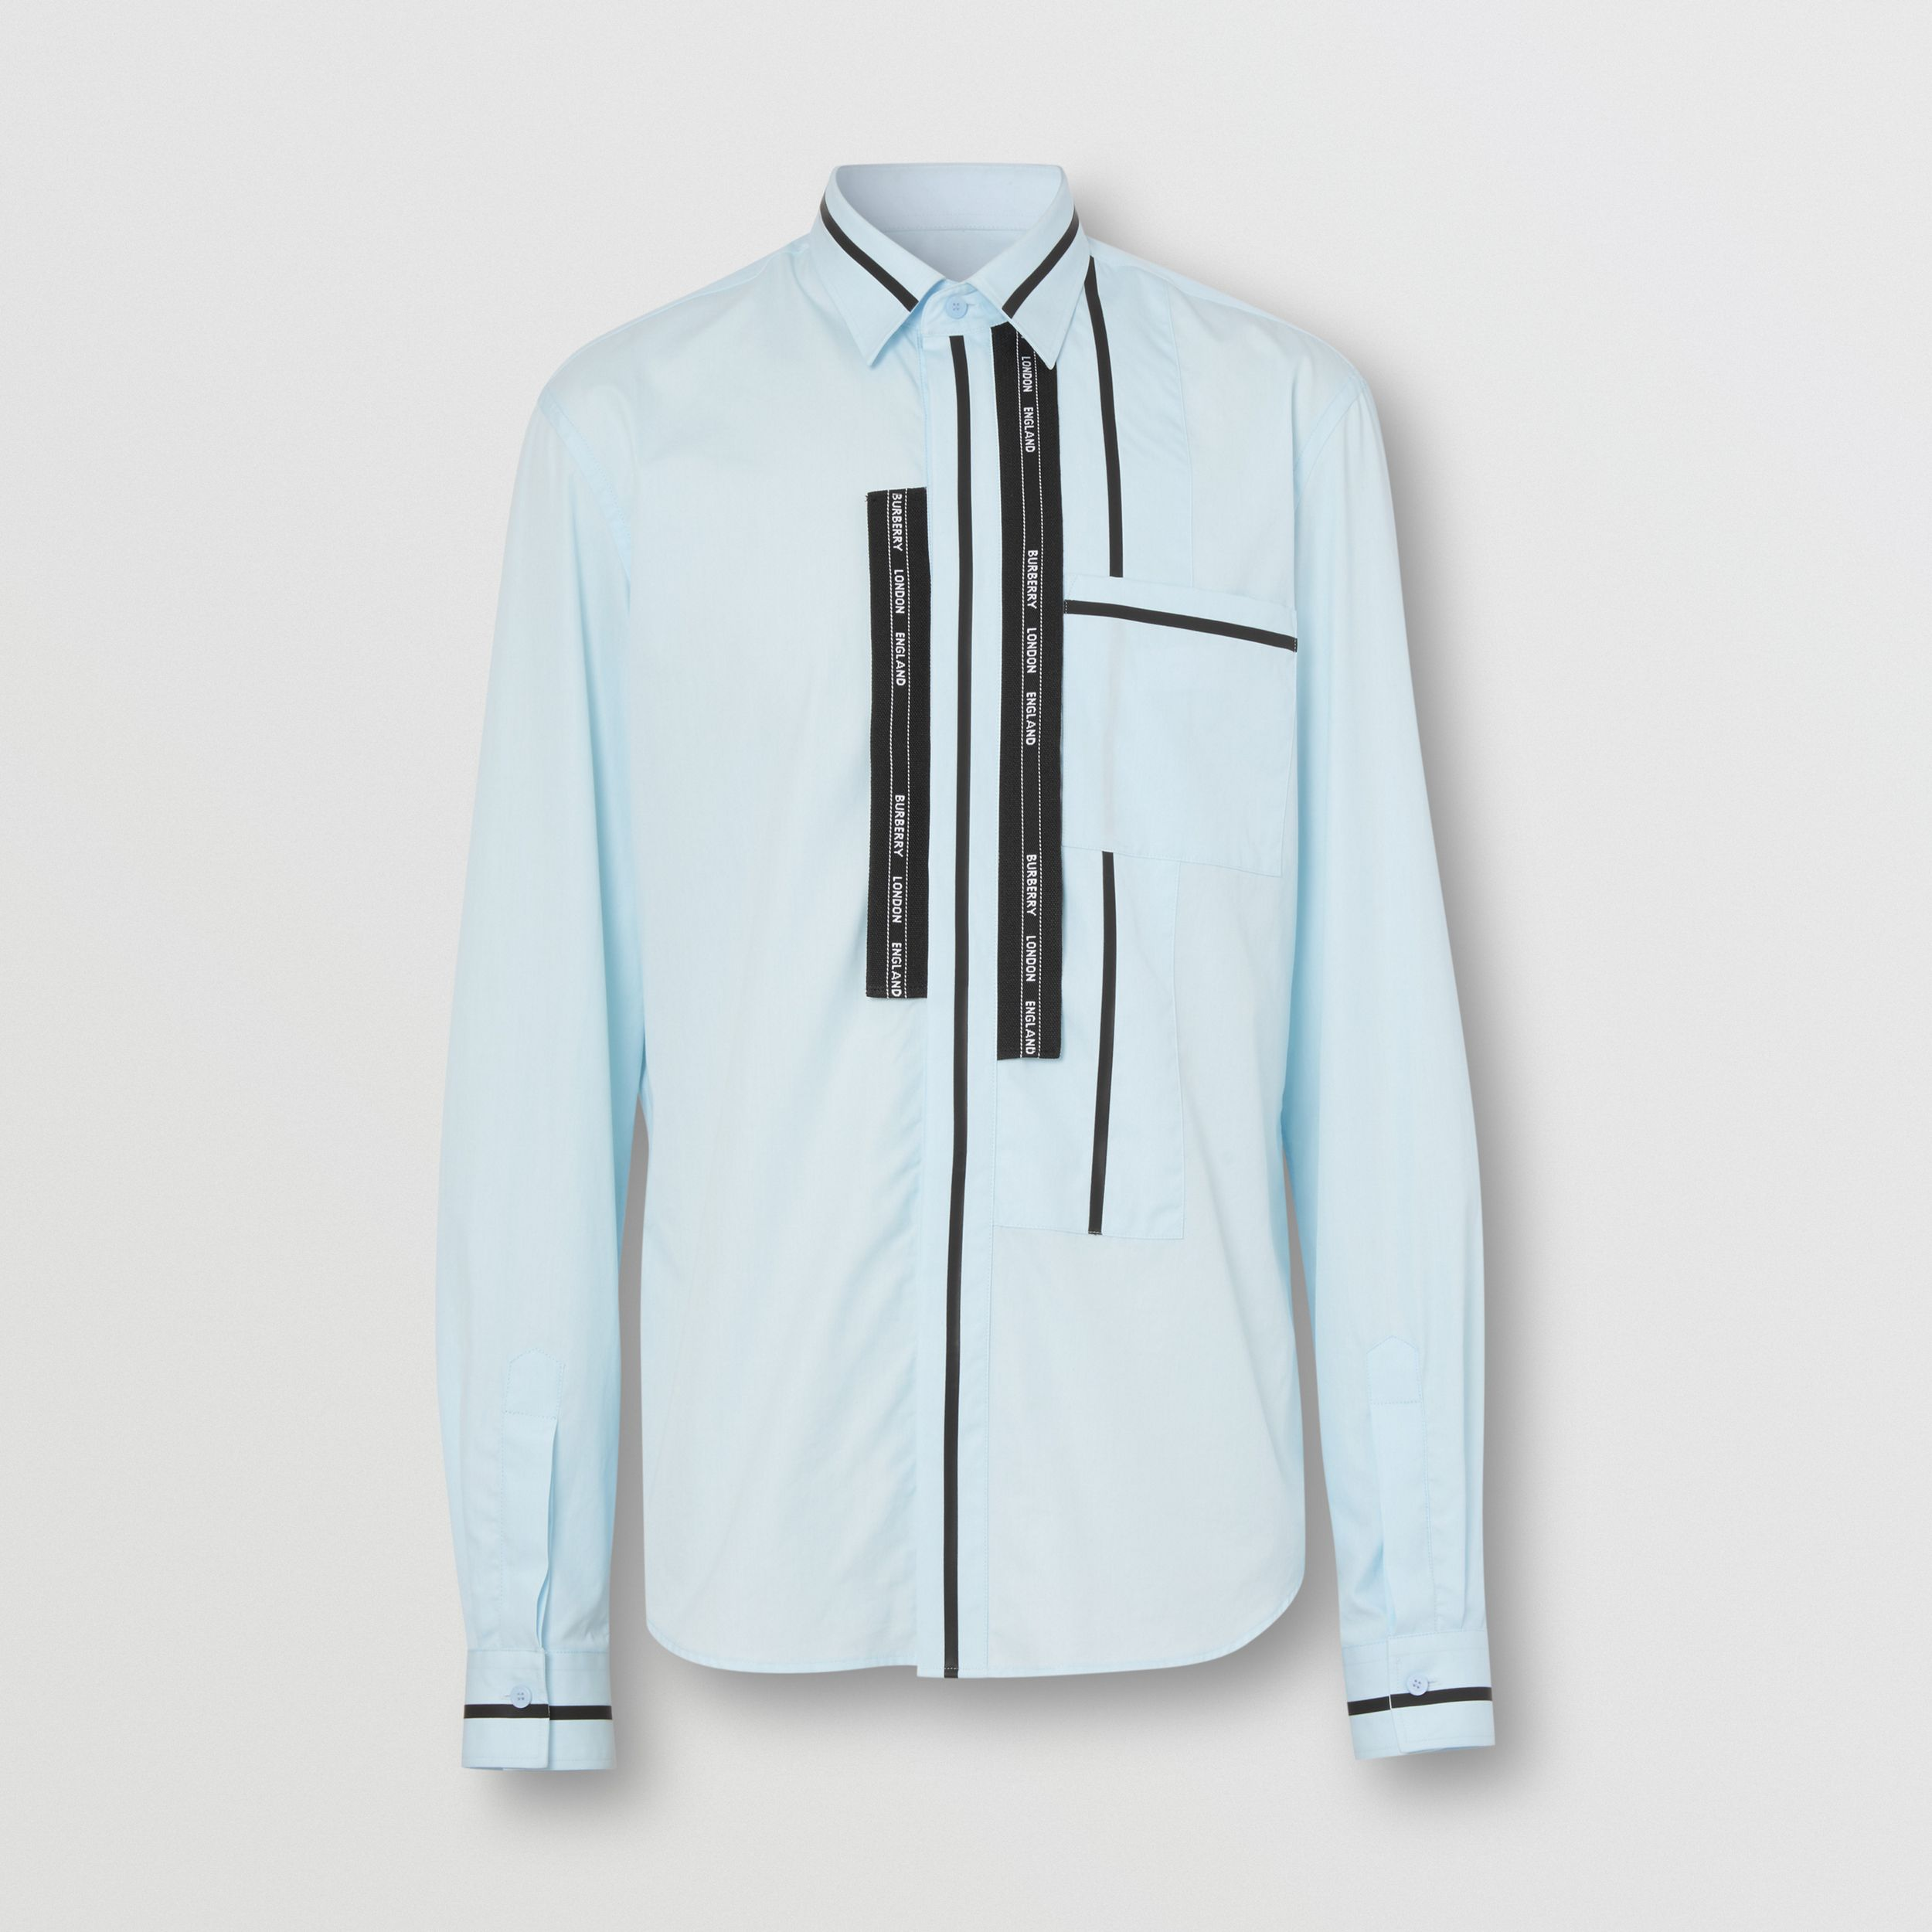 Classic Fit Logo Tape Detail Cotton Poplin Shirt in Pale Blue - Men | Burberry - 4